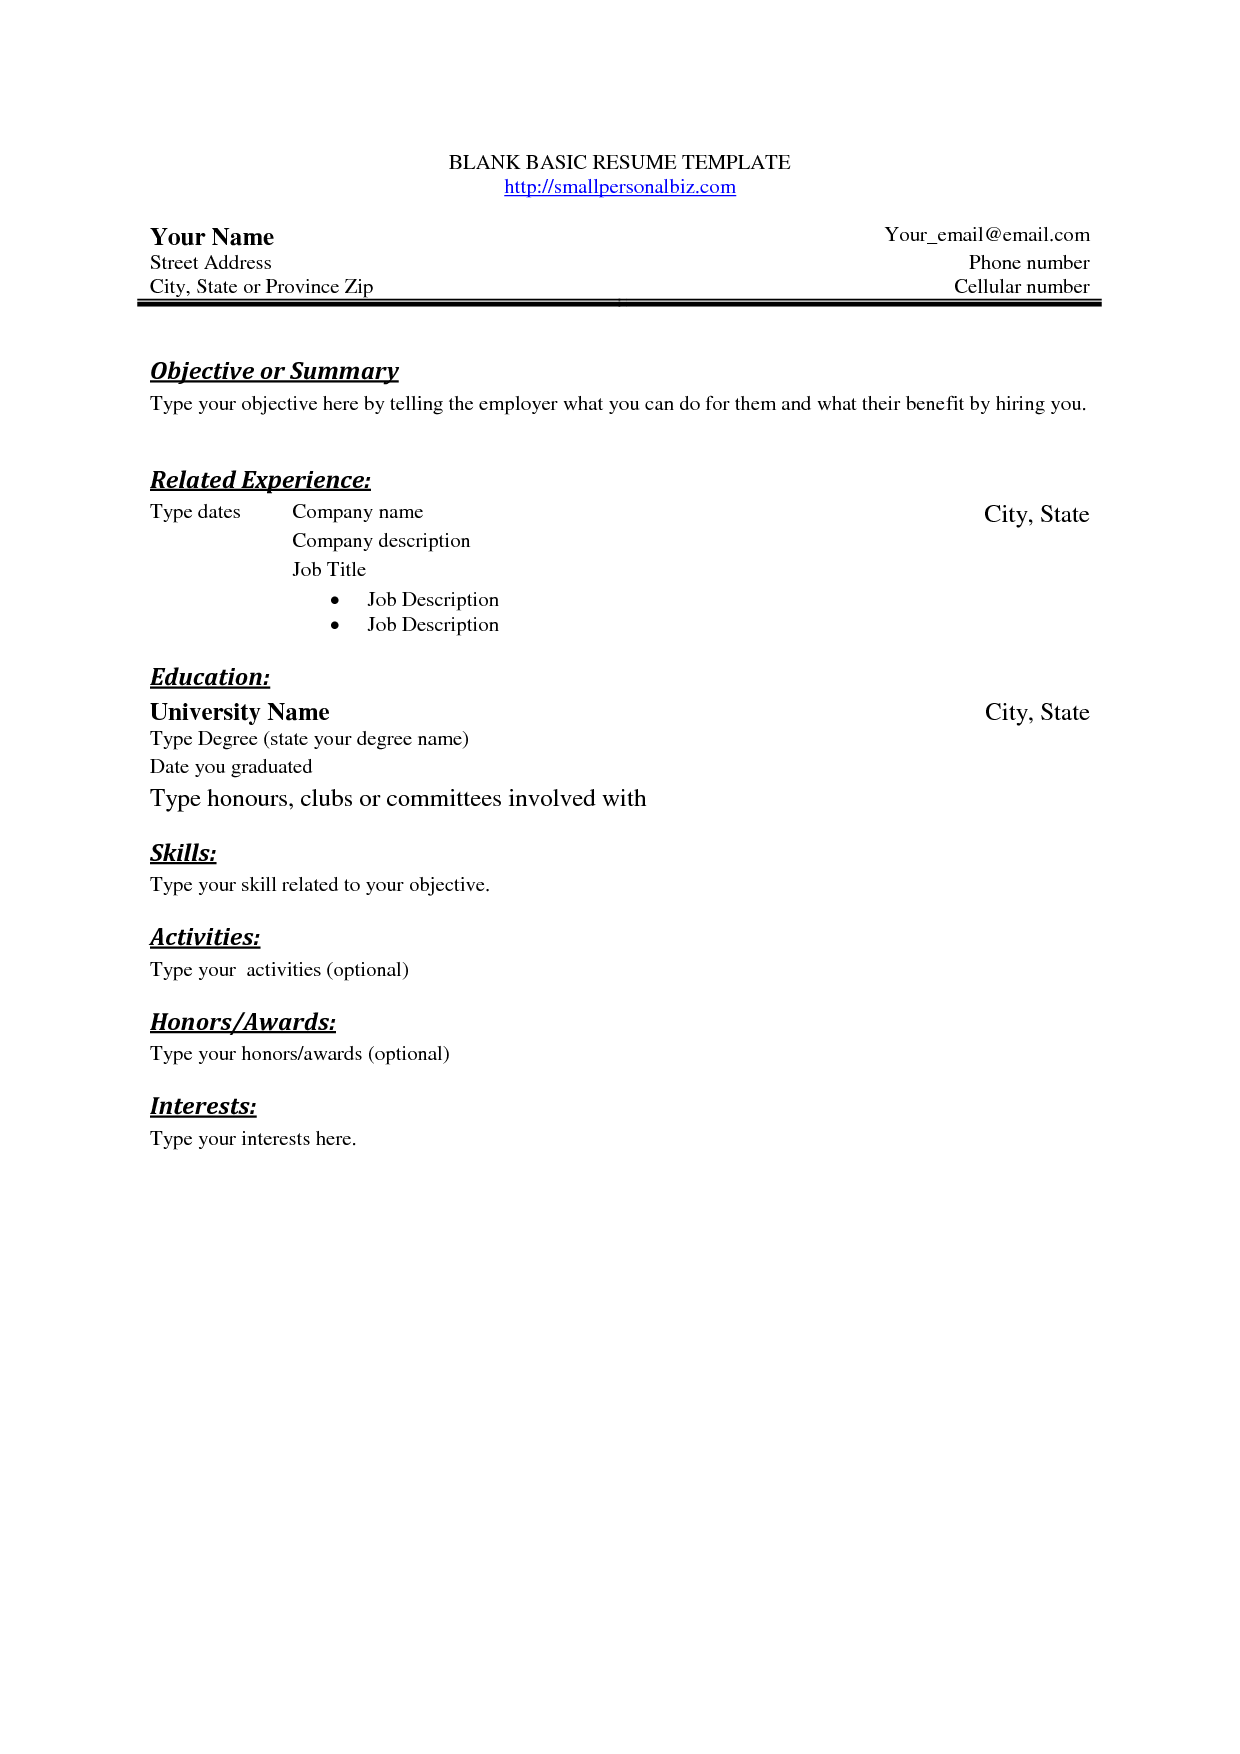 Resume Templates Tamu Best Stylist And Luxury Simple Resume Layout 10 Free Basic Blank Resume